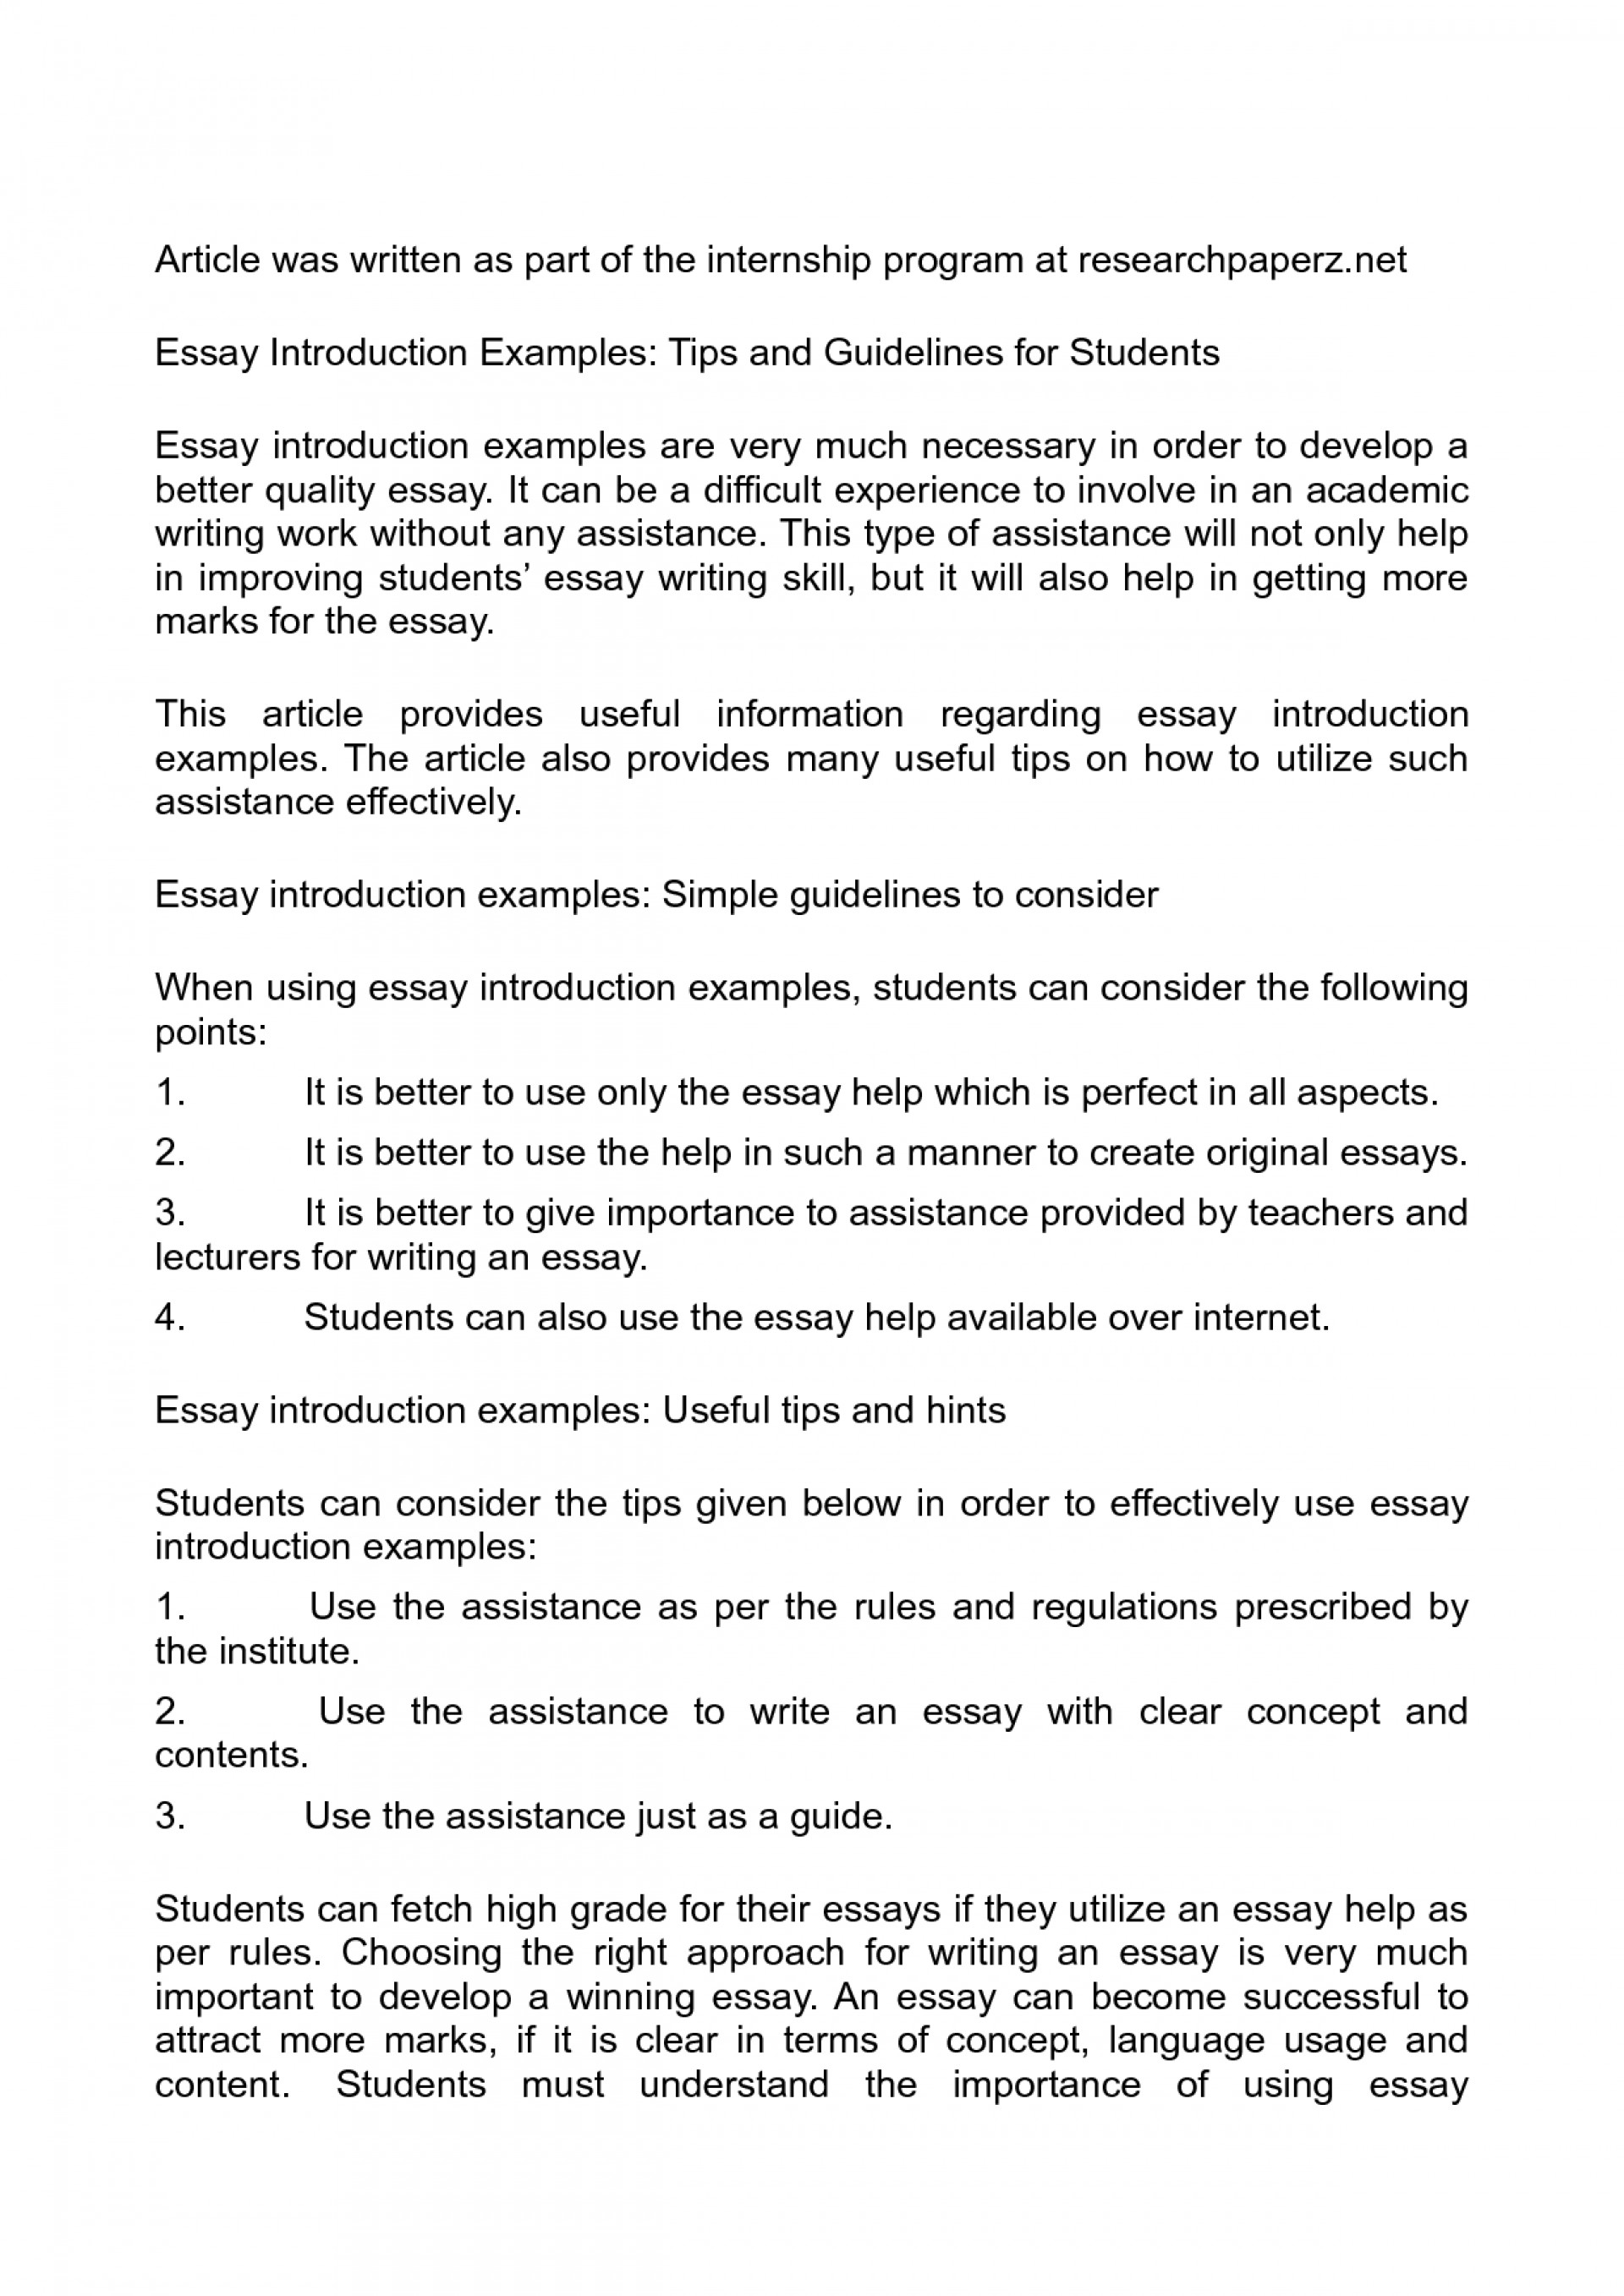 003 Eyx5t6okob Introduction Essays Outstanding Essay Examples University Middle School Writing Compare And Contrast 1920